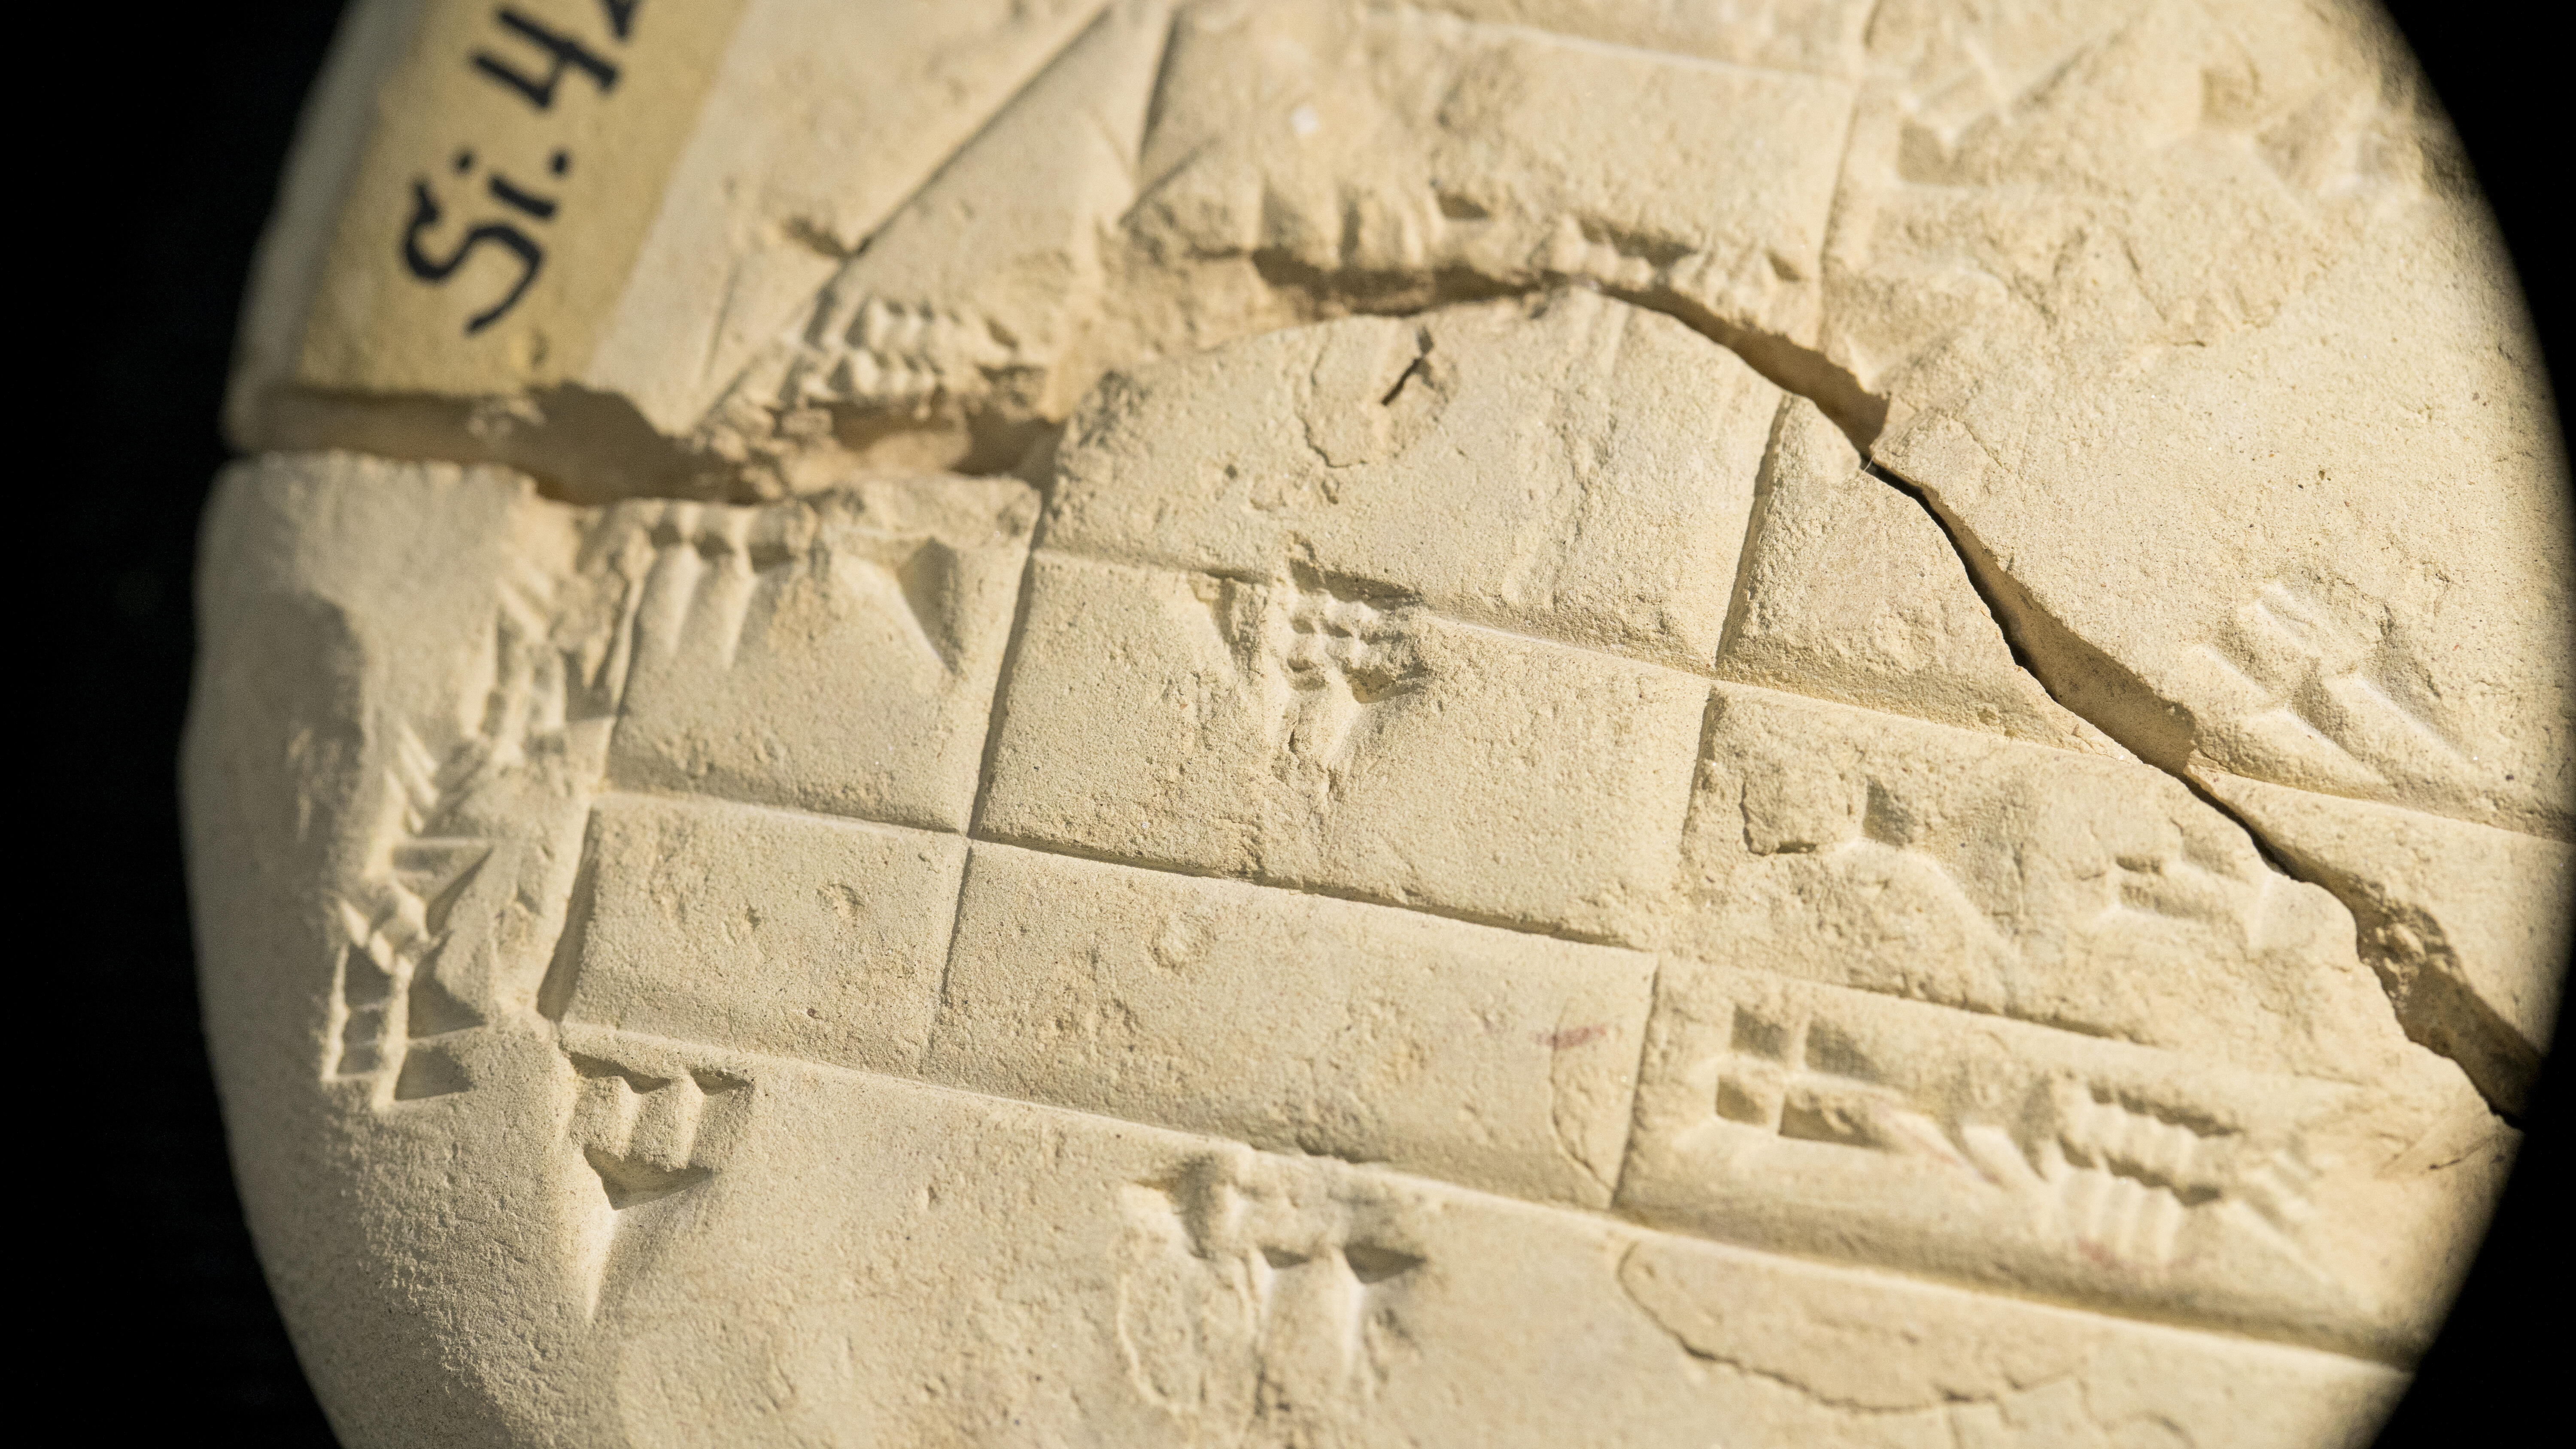 3,700-year-old clay tablet shows we've been using geometry for longer than we realized - CNET